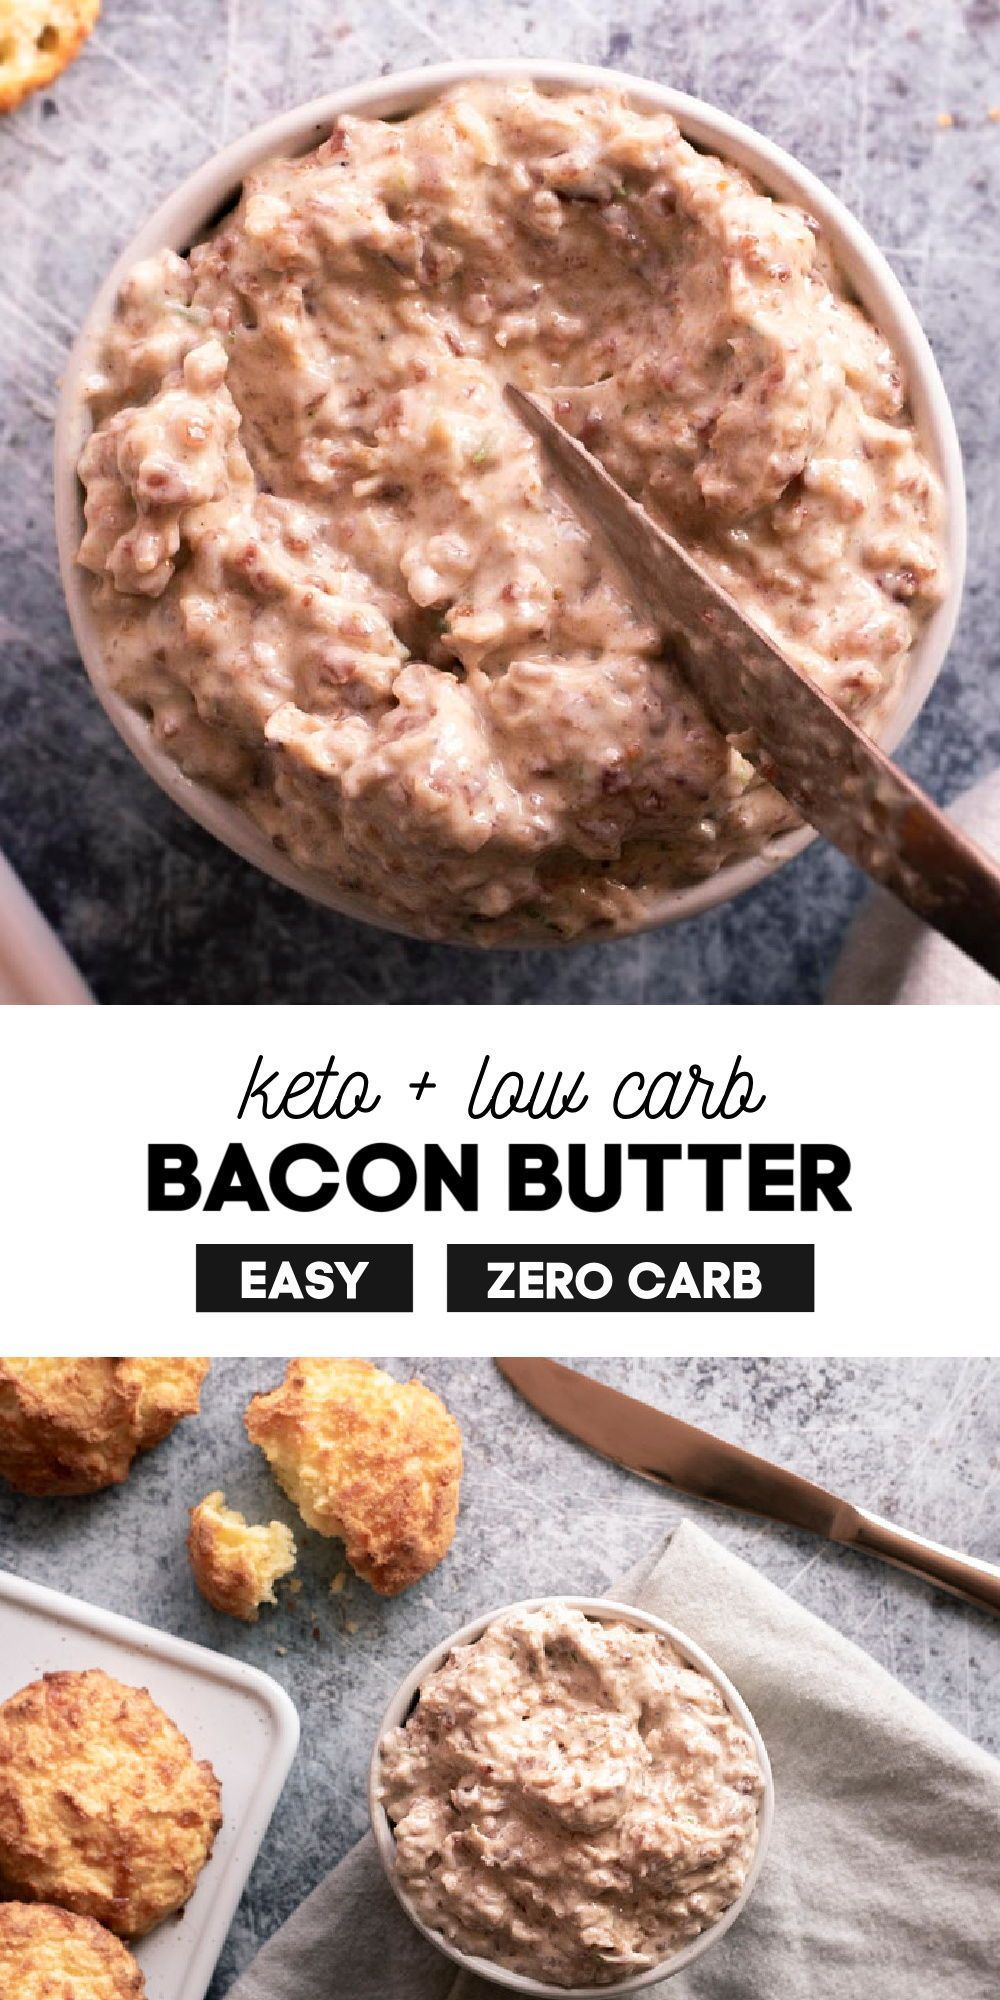 Bacon Butter Ready In 5 Mins Recipe In 2020 Bacon And Butter Low Carb Appetizers Delicious Snacks Recipes